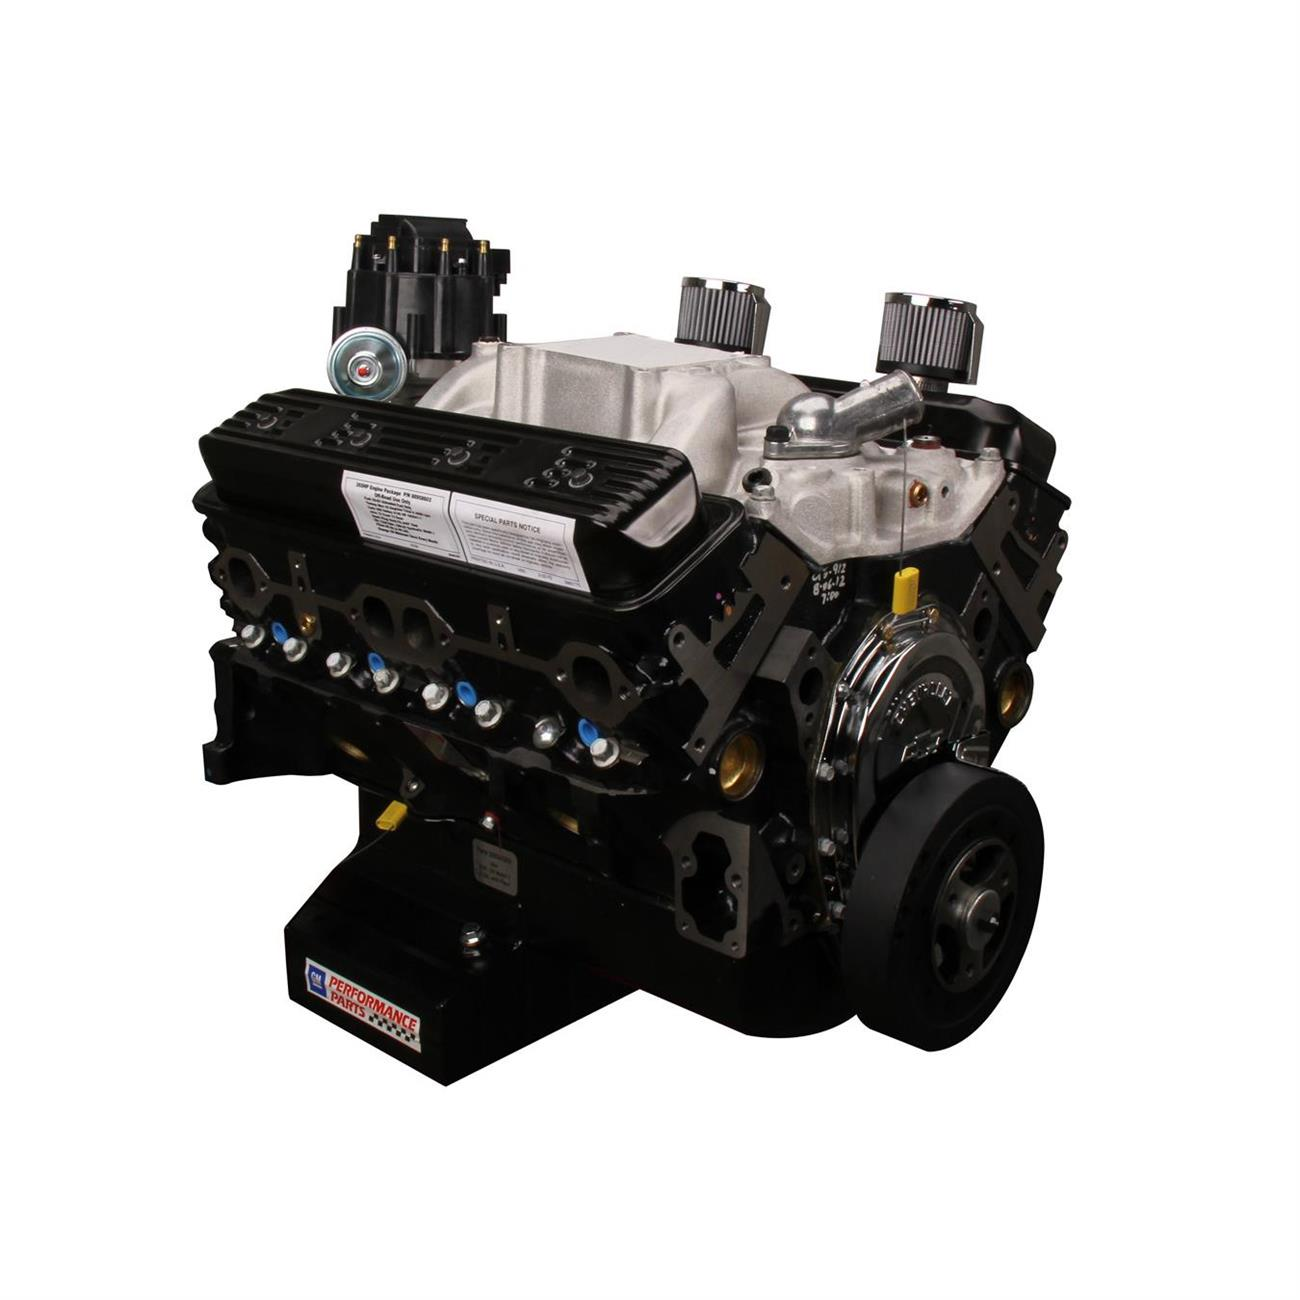 Crate Motors Chevrolet Performance 19258602 Ct350 Imca Seal 602 Chevy Crate Engine